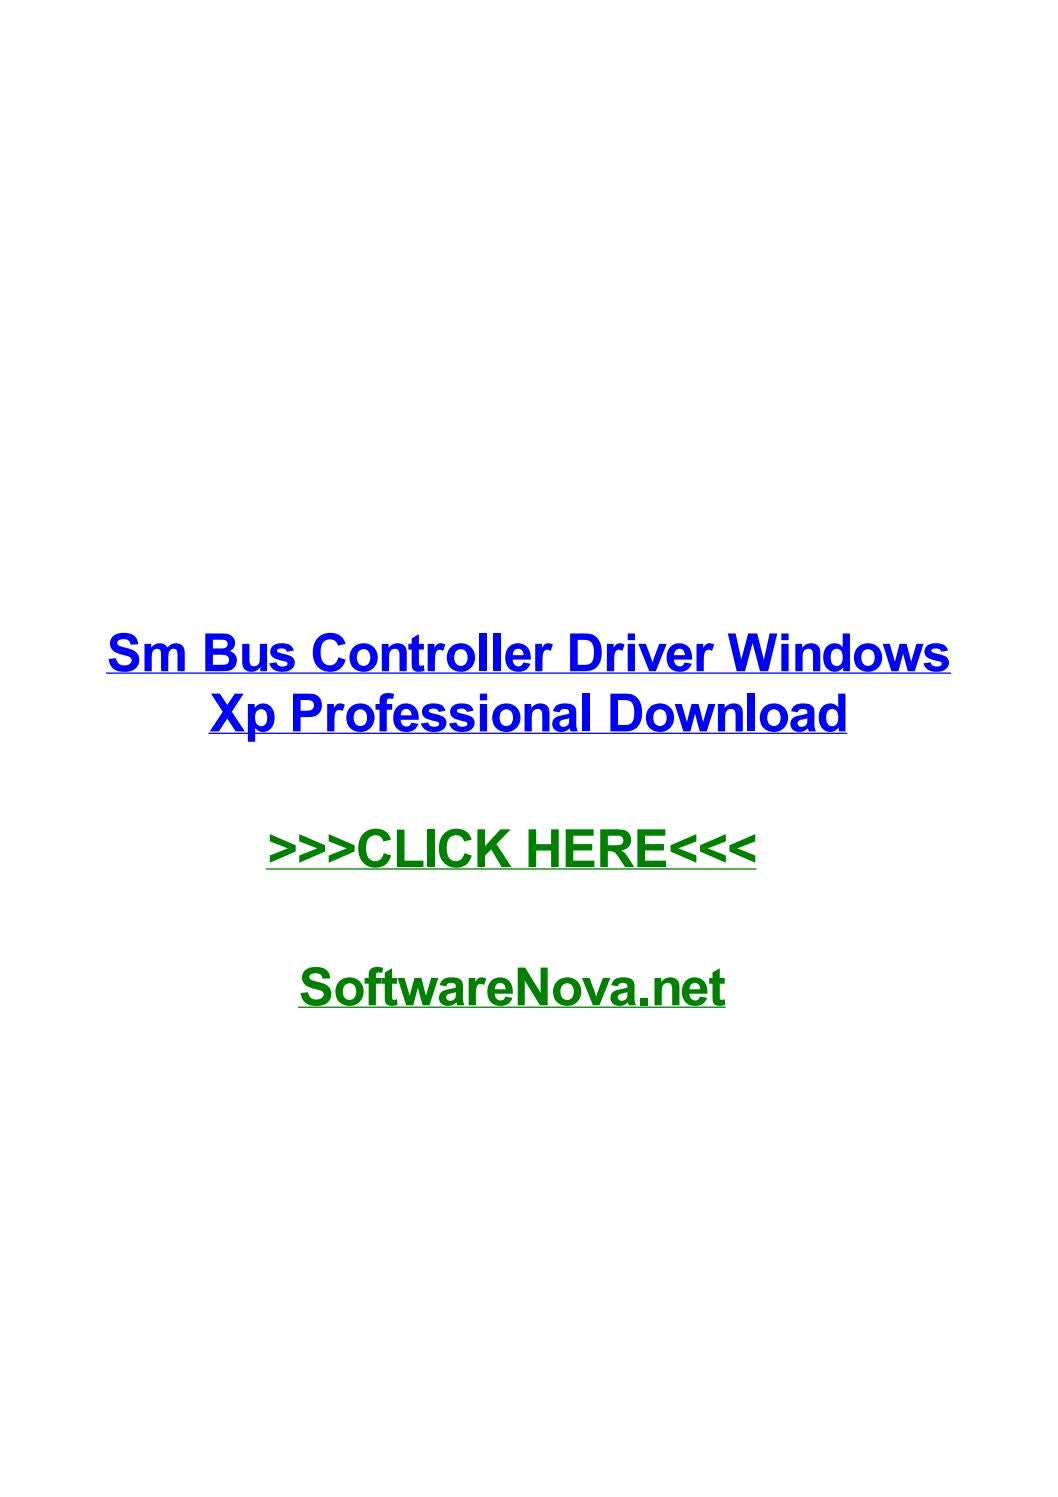 Sm bus controller driver windows xp professional download by.